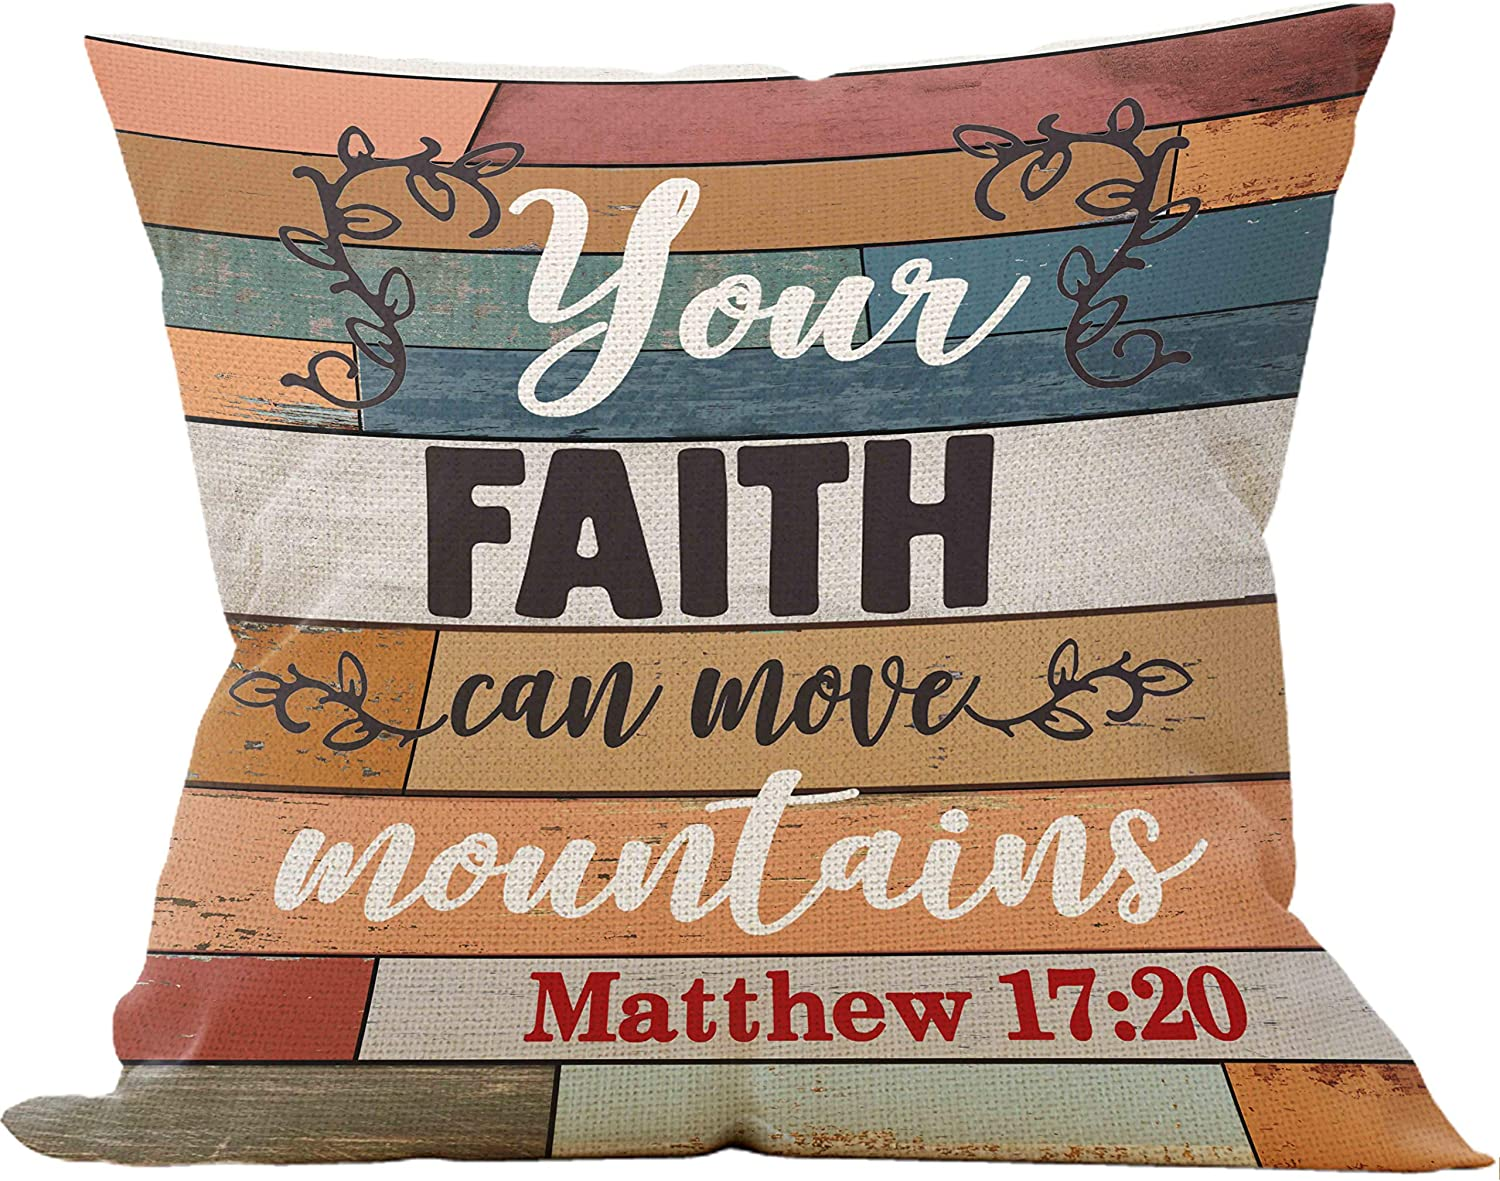 Your Faith Can Move Mountains Throw Pillow Case, Christian Decor, Christian Gift, Church Gifts, 18 x 18 Inch Scripture Art Decorative Linen Cushion Cover for Sofa Couch Bed, Matthew 17:20